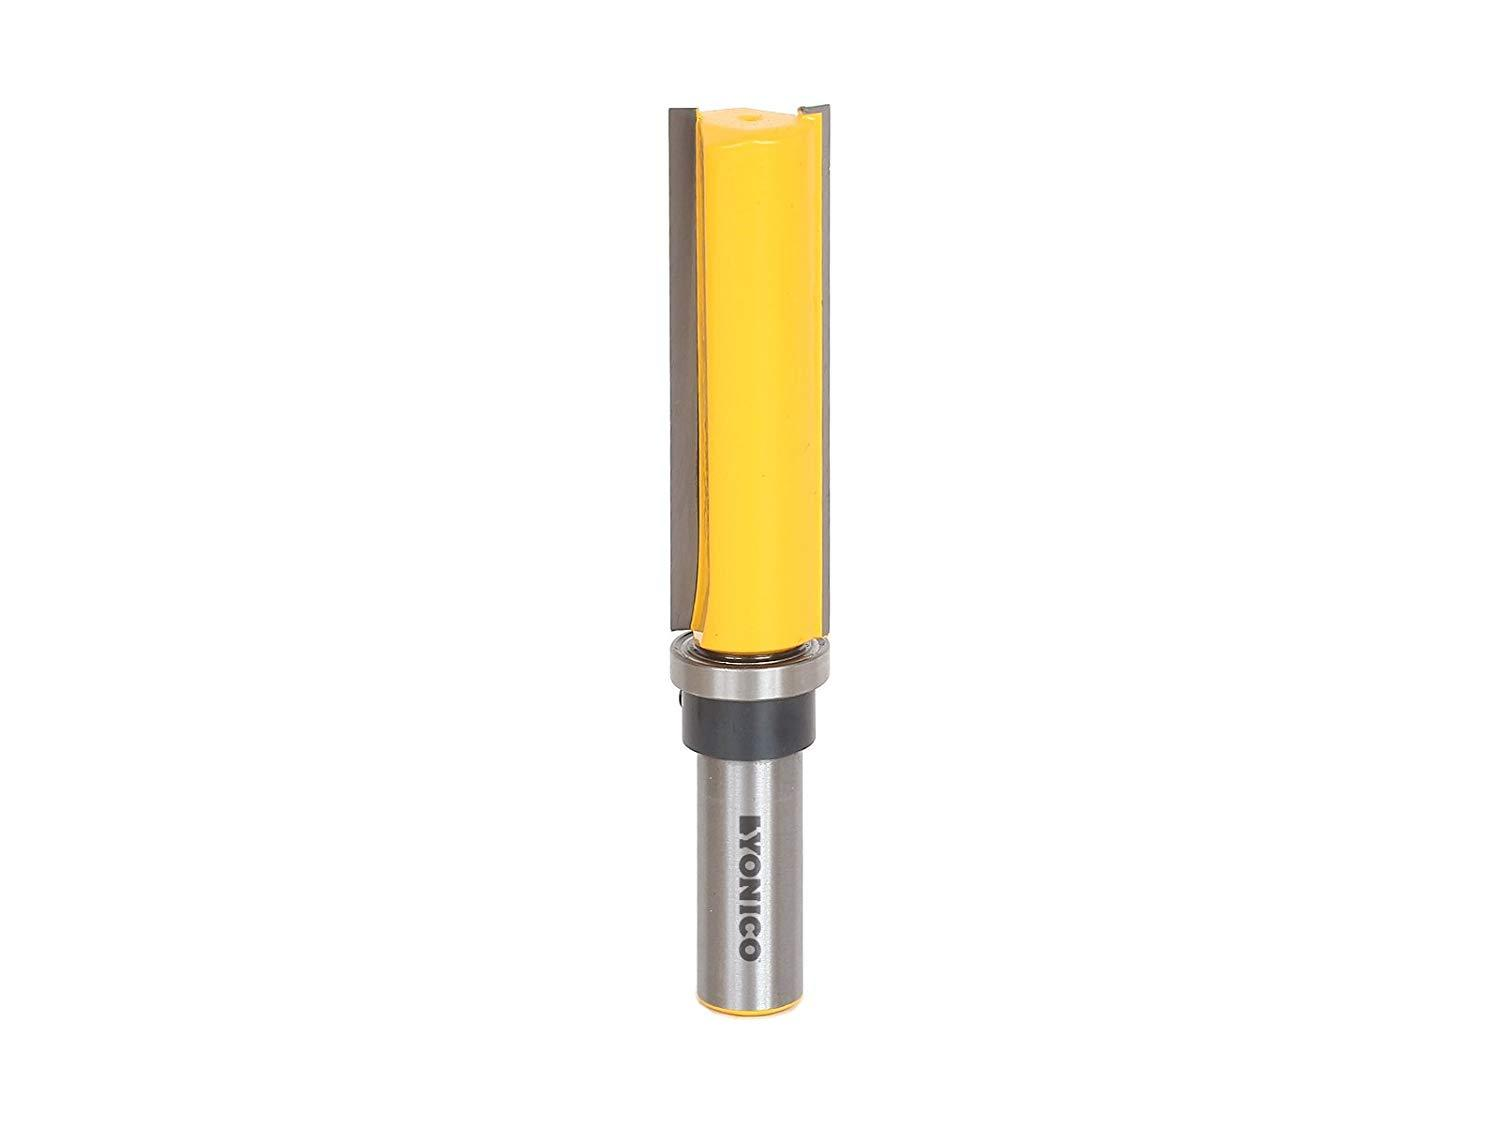 Flush Template Router Bit